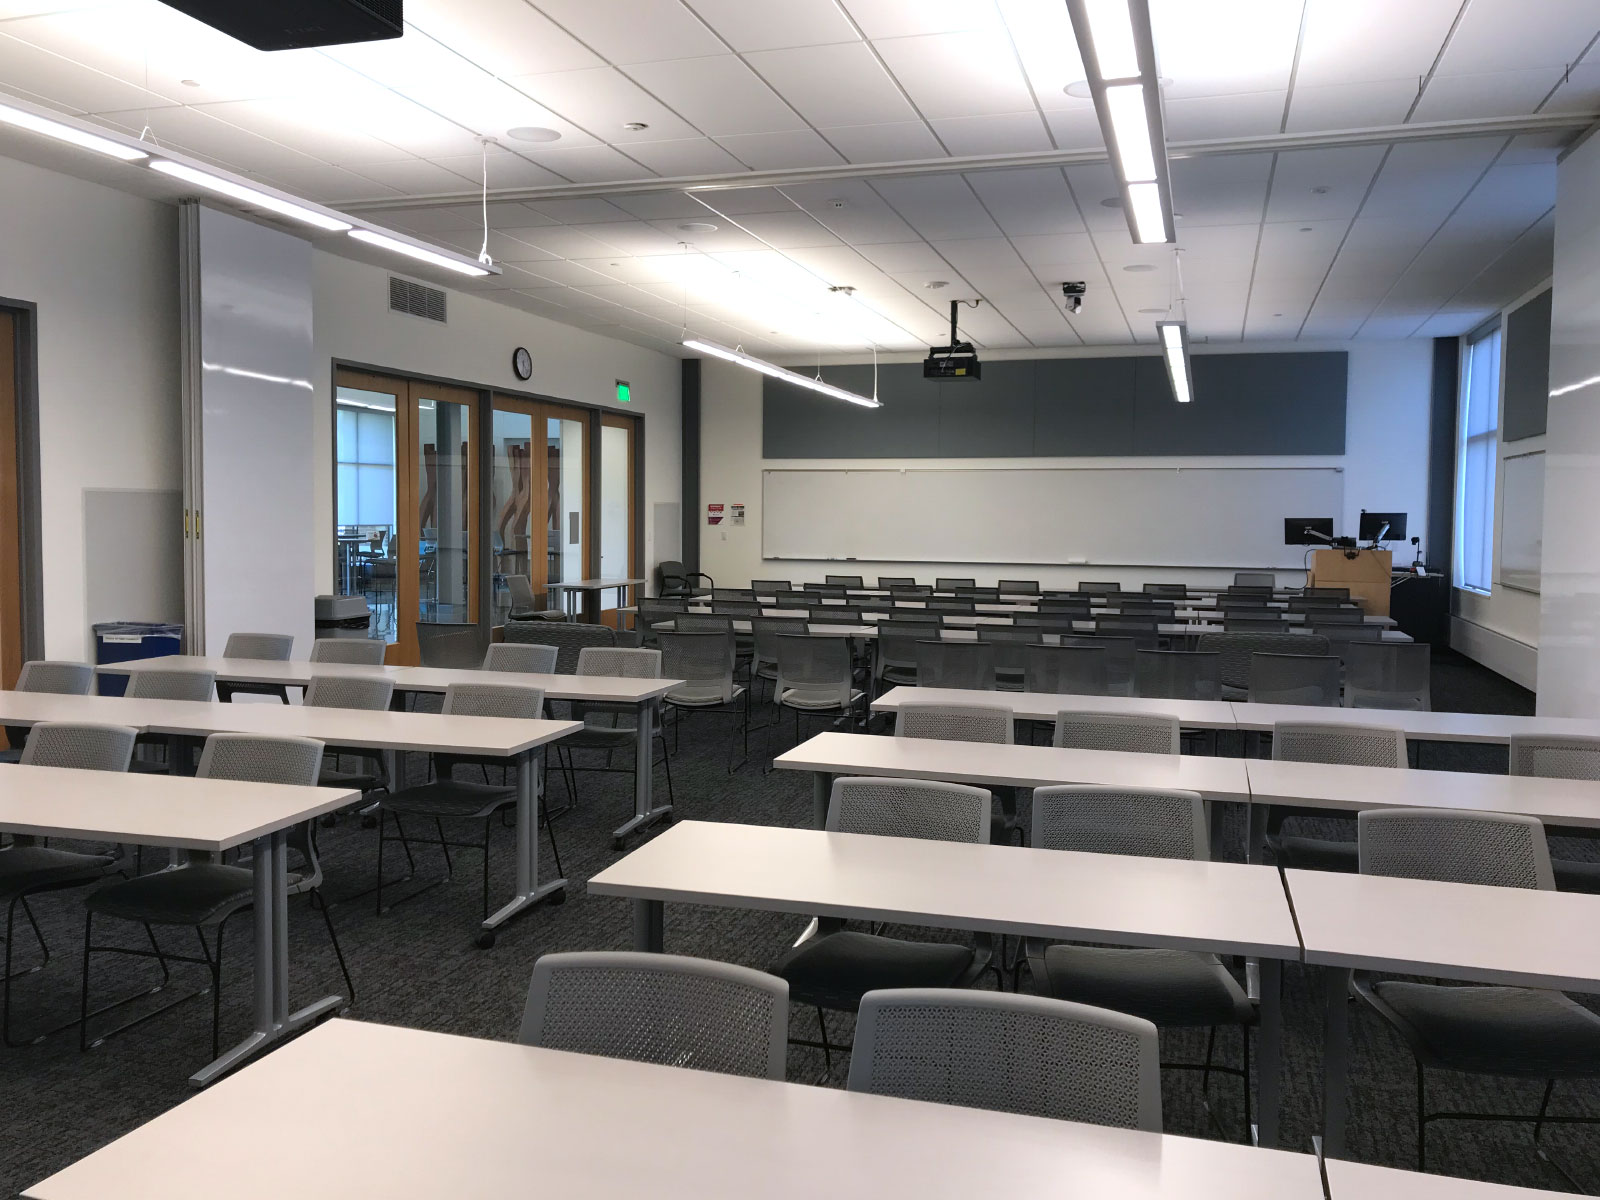 A classroom with many rows of tables and chairs in the Industrial Technology Center